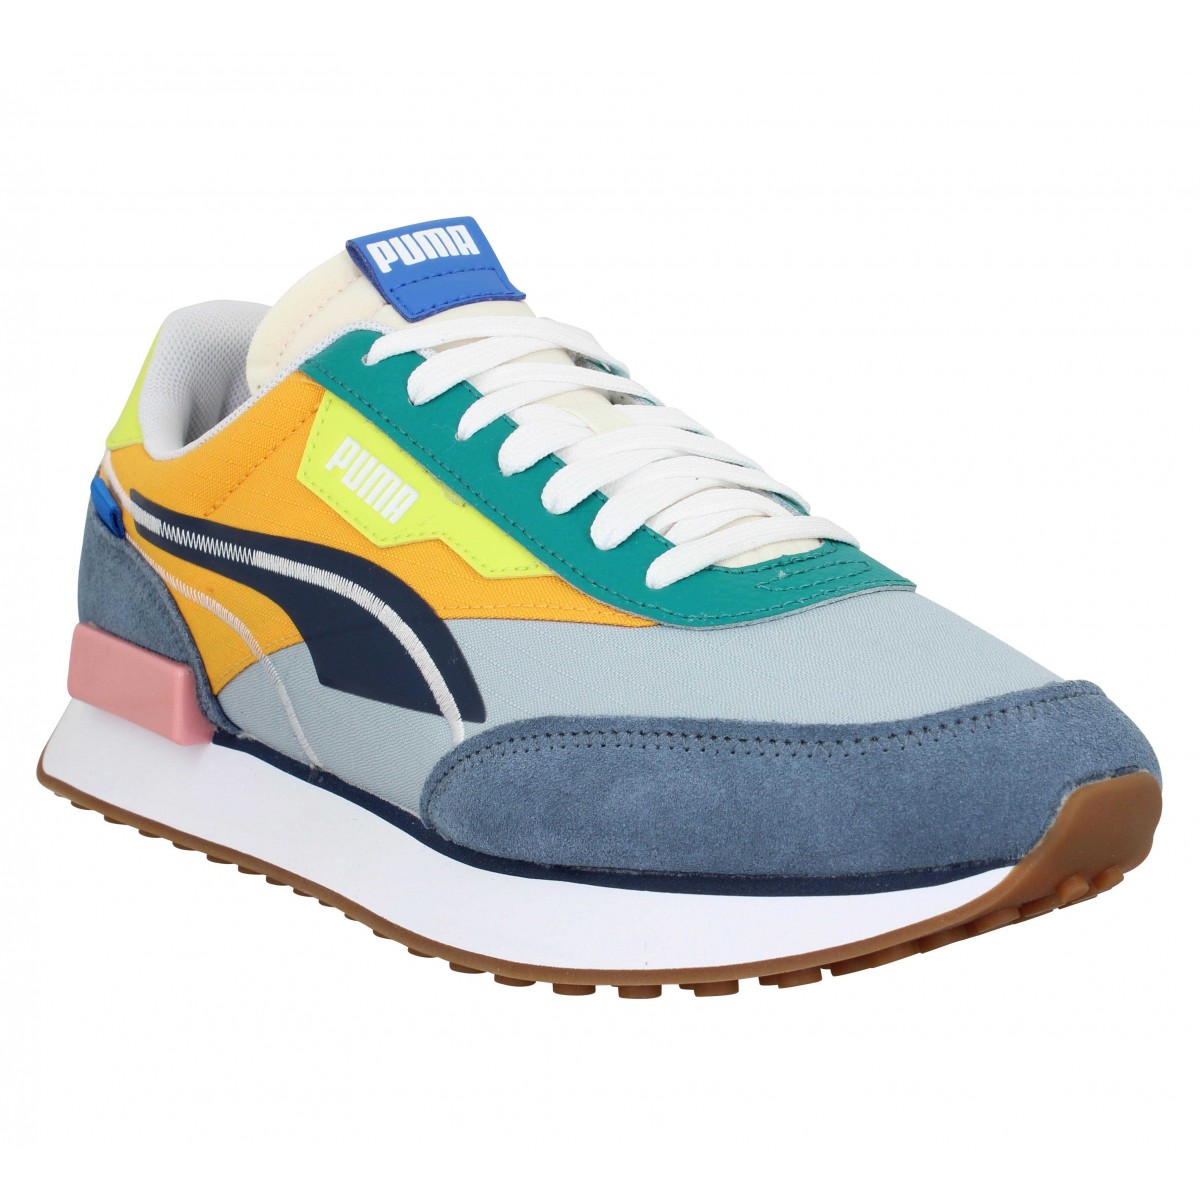 Baskets PUMA Future Rider Twofold SD velours toile Homme China Blue